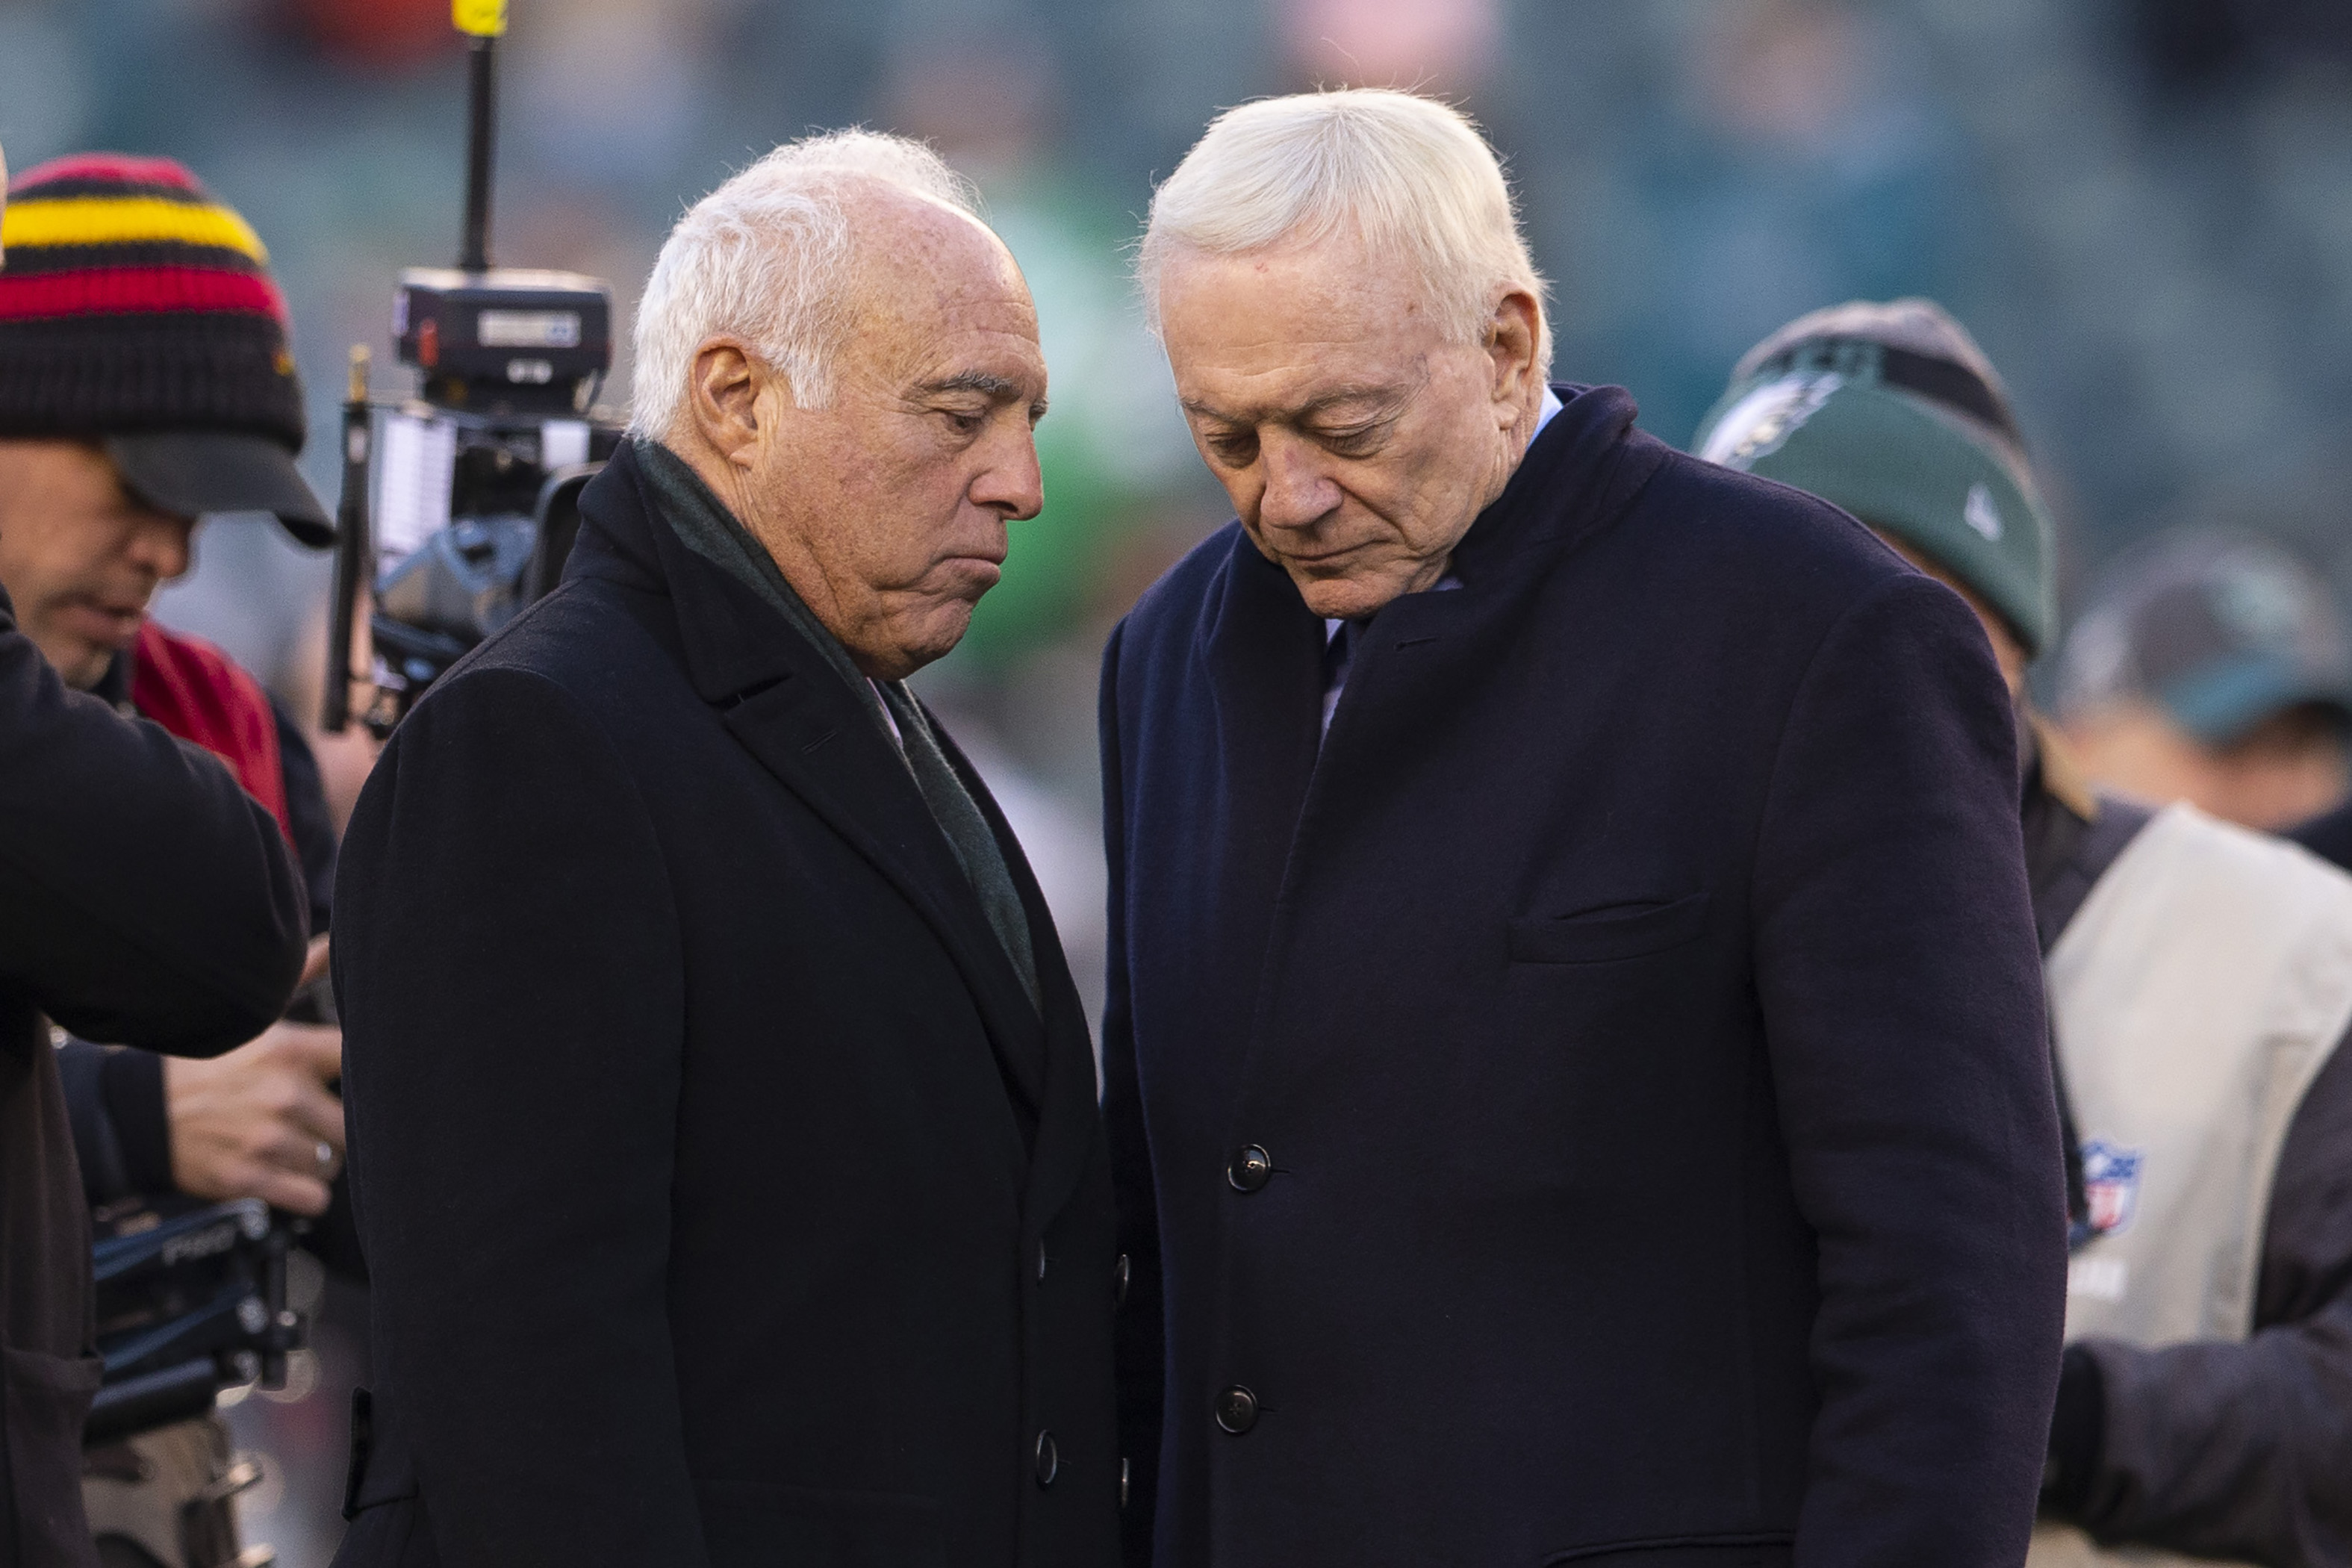 Eagles owner Jeffrey Lurie talks to Cowboys owner Jerry Jones in 2019